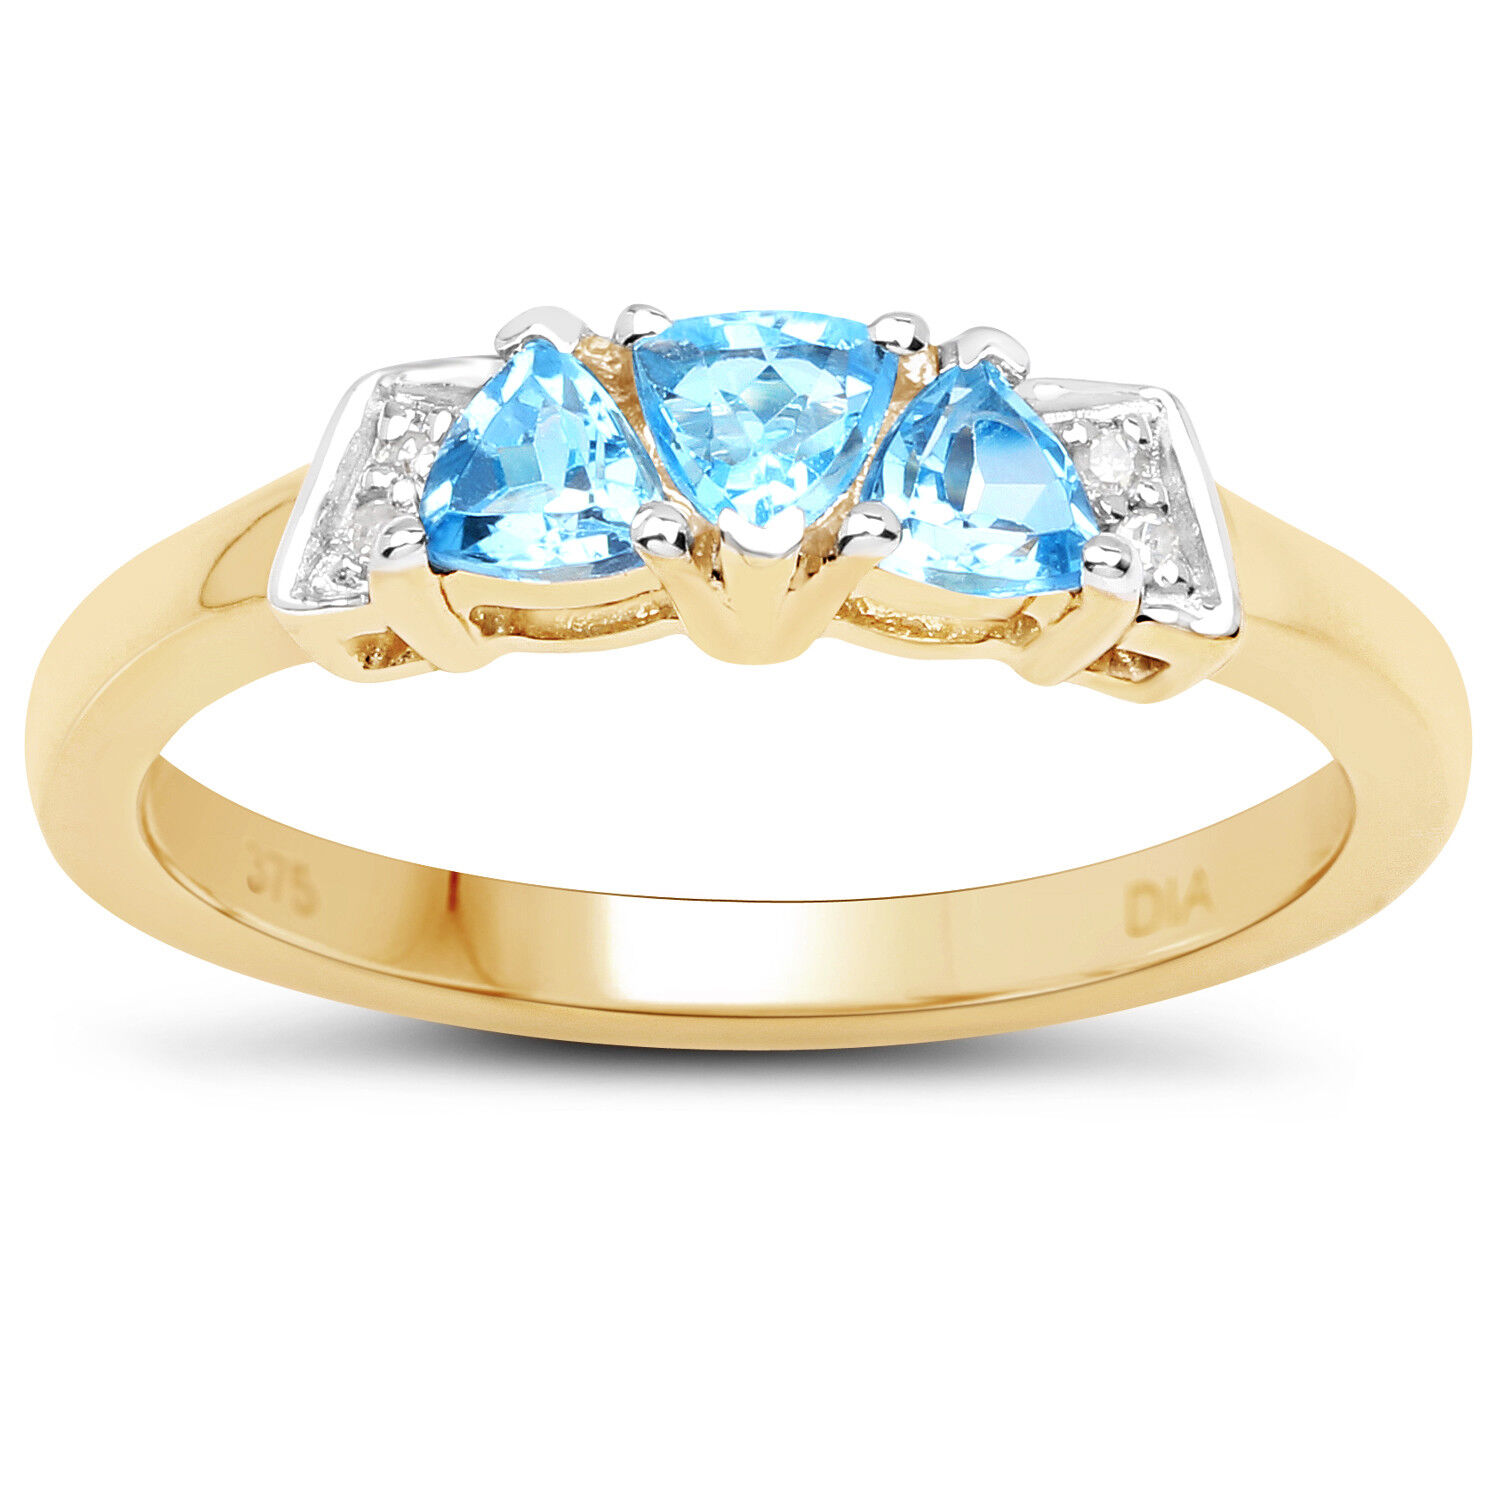 9ct gold blueee Topaz & Diamond Engagement Ring, ring Size H,I,J,K,L,M,N,O,P,Q,R,S